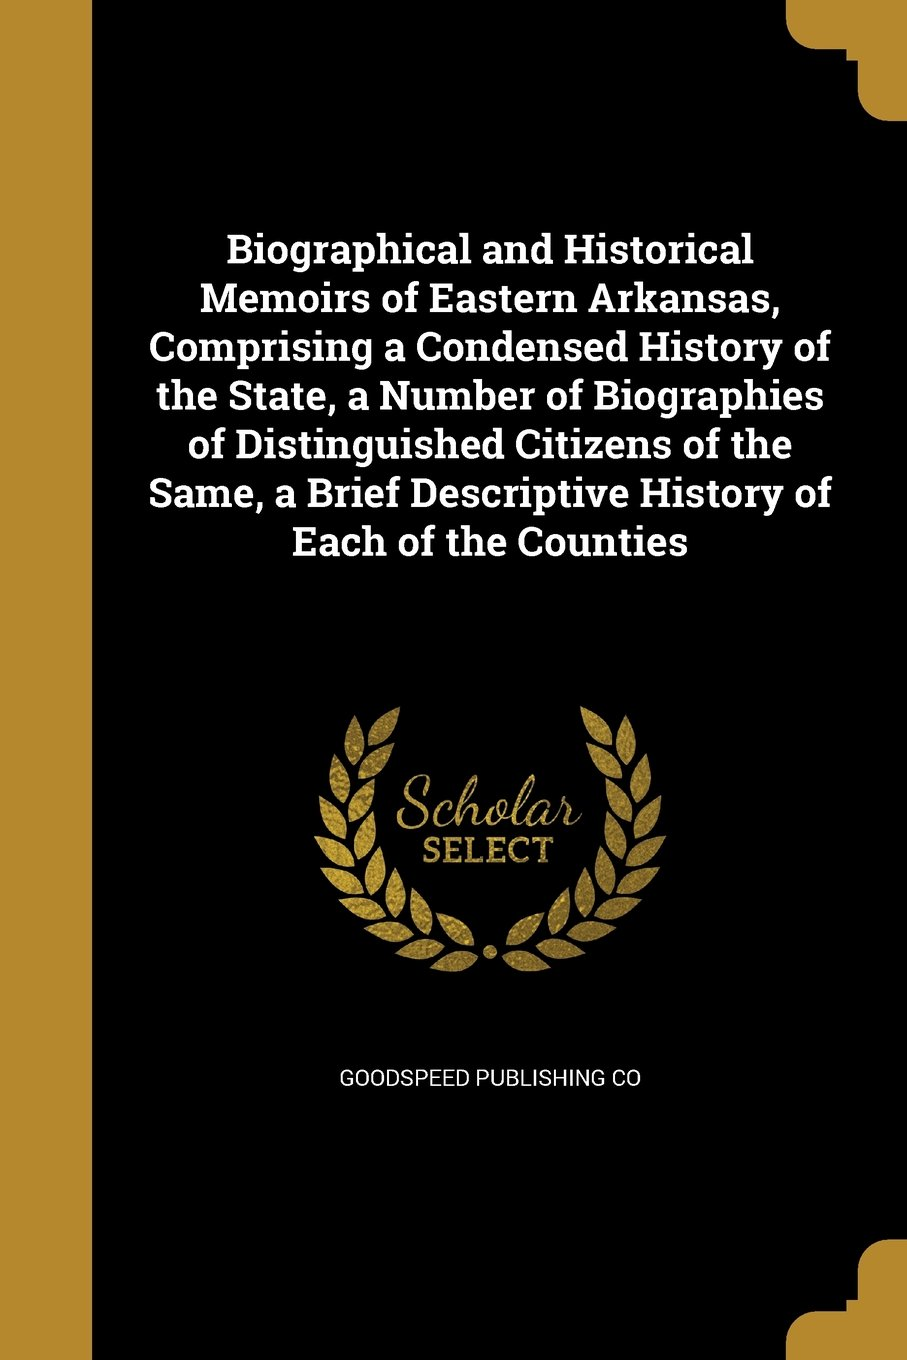 Read Online Biographical and Historical Memoirs of Eastern Arkansas, Comprising a Condensed History of the State, a Number of Biographies of Distinguished ... Descriptive History of Each of the Counties ebook